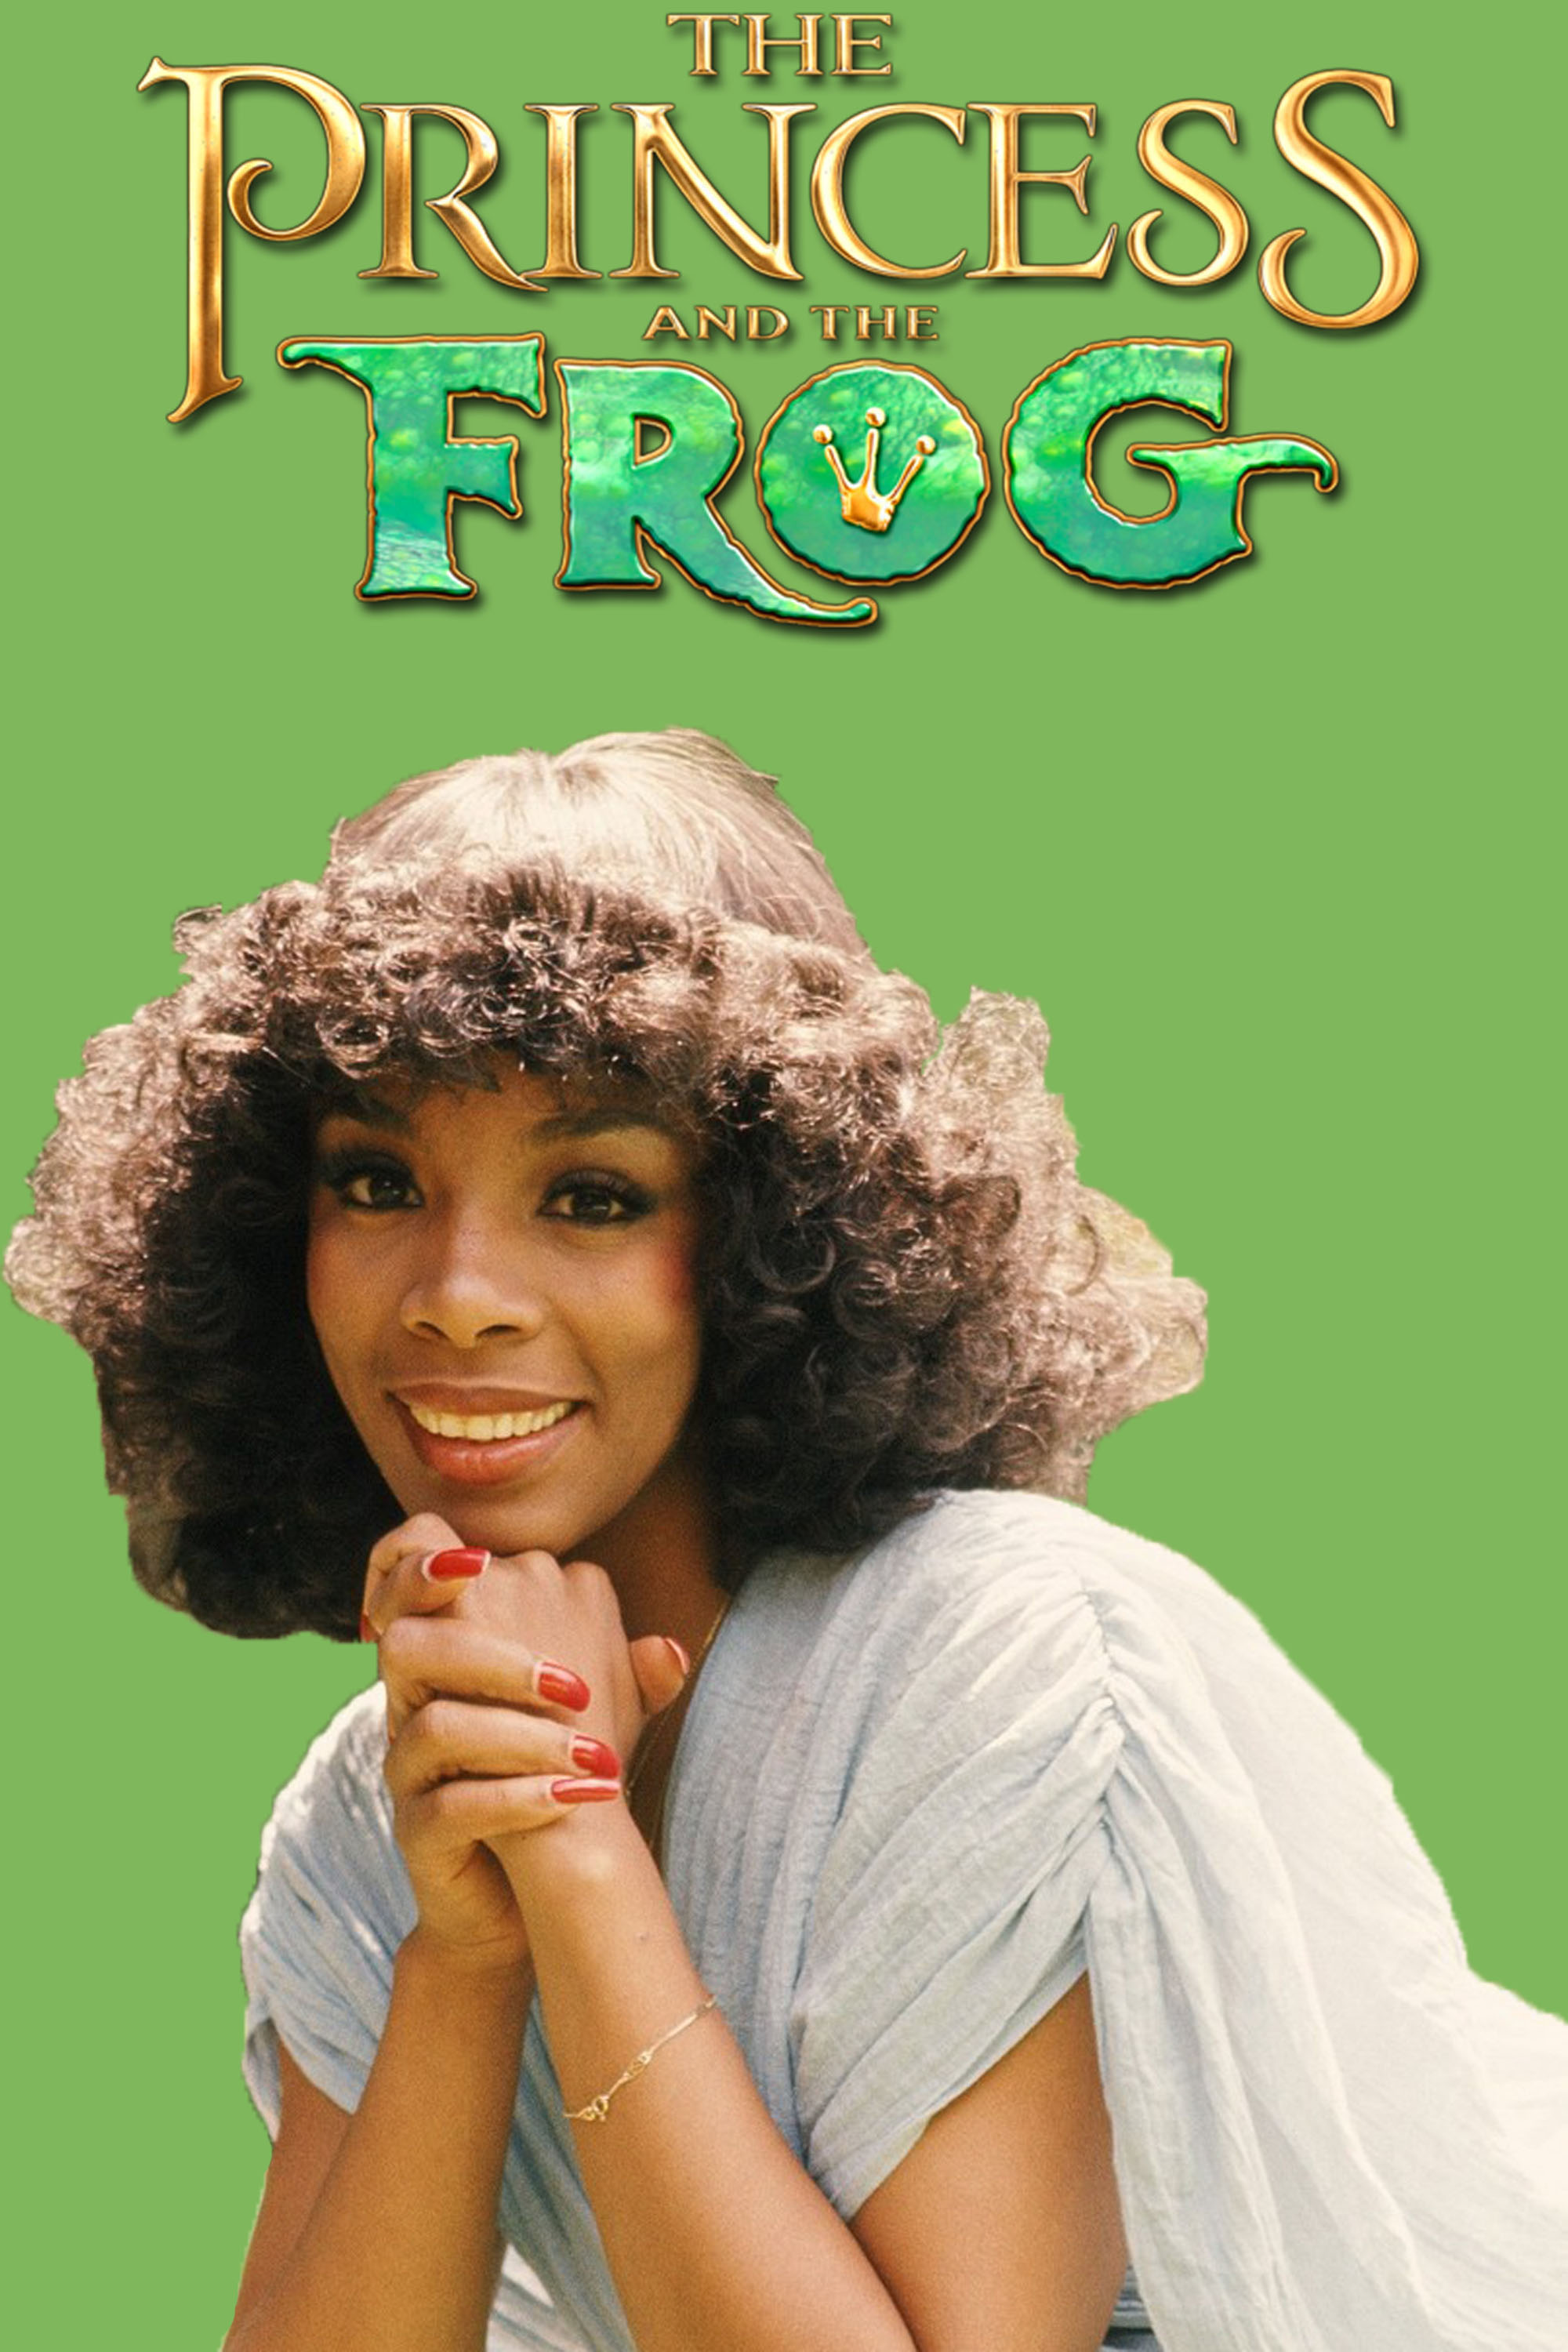 The Princess and the Frog (Broadwaygirl918 Non/Fiction Style)